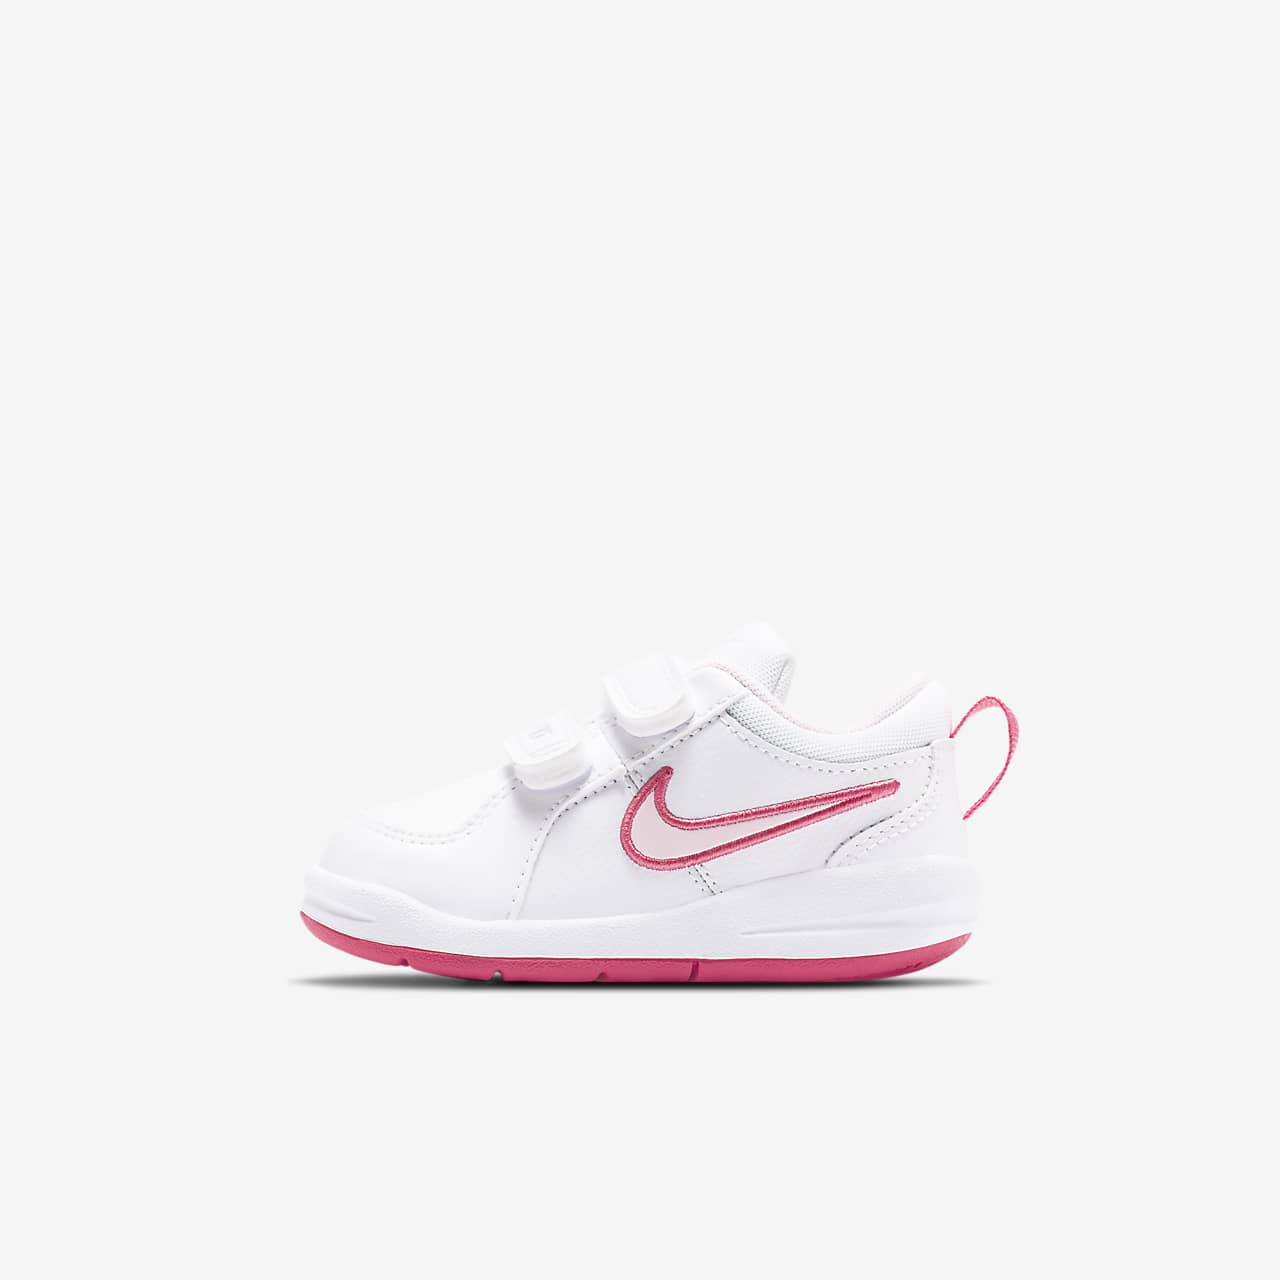 219ddf7e5a02 Nike Pico 4 (1.5–9.5) Baby and Toddler Girls  Shoe. Nike.com ID